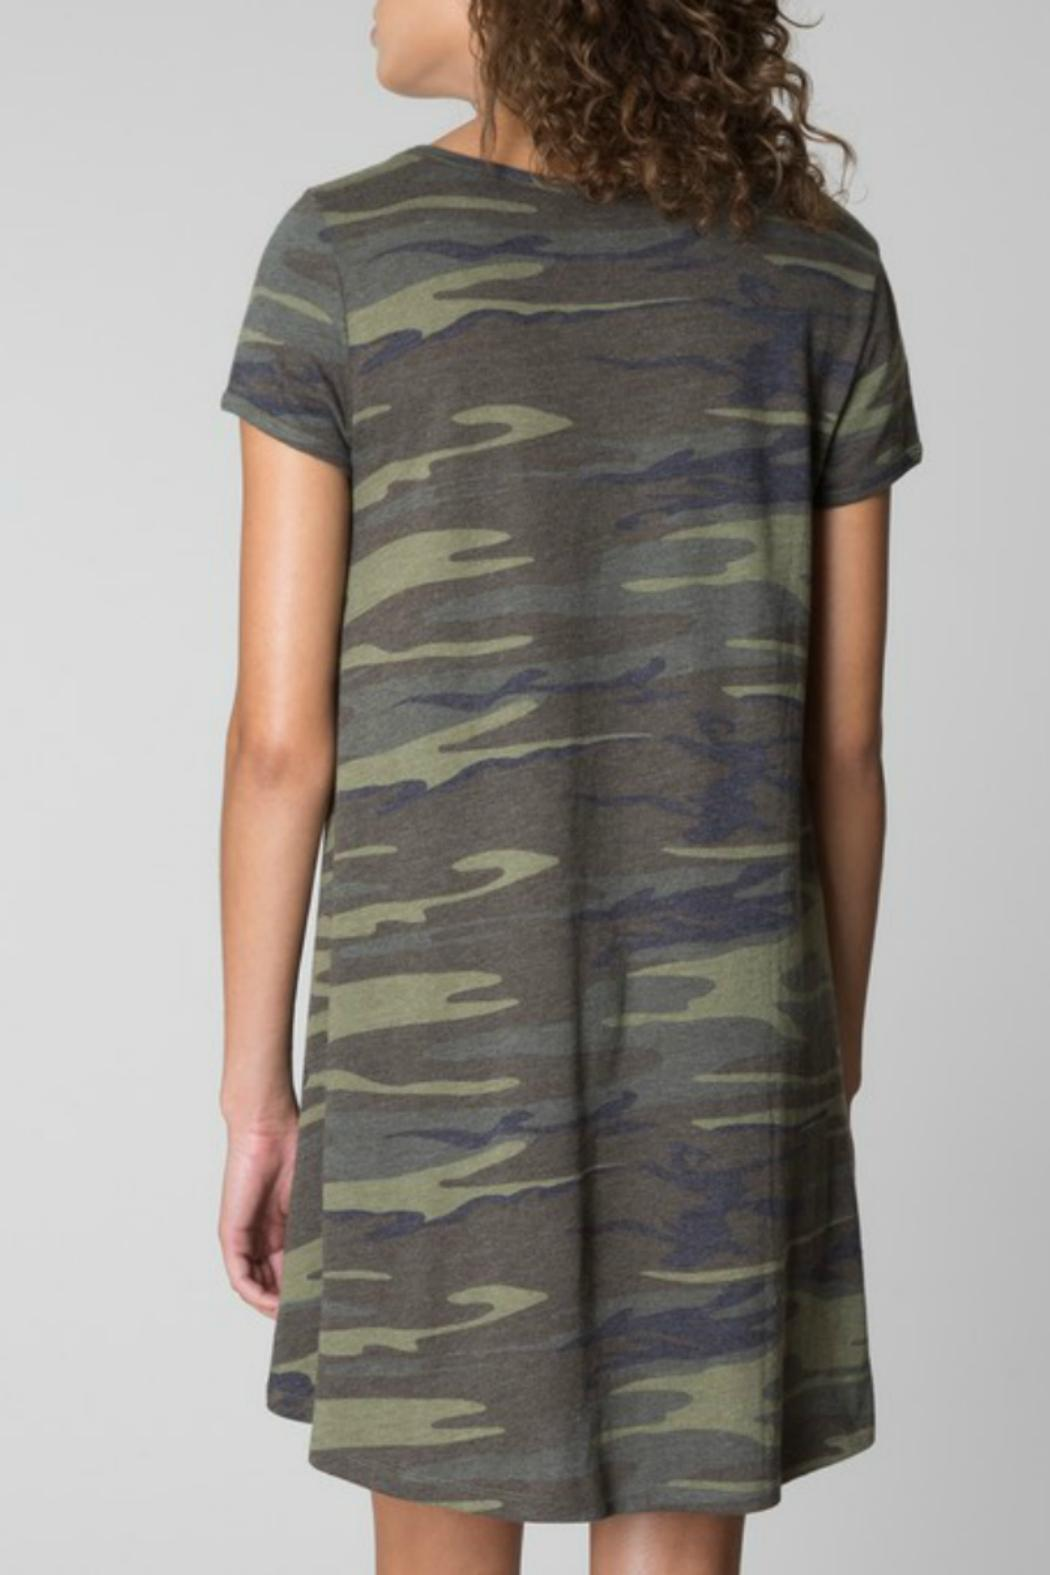 Z supply camo shirt dress from new jersey by charlotte 39 s for Green camo shirt outfit